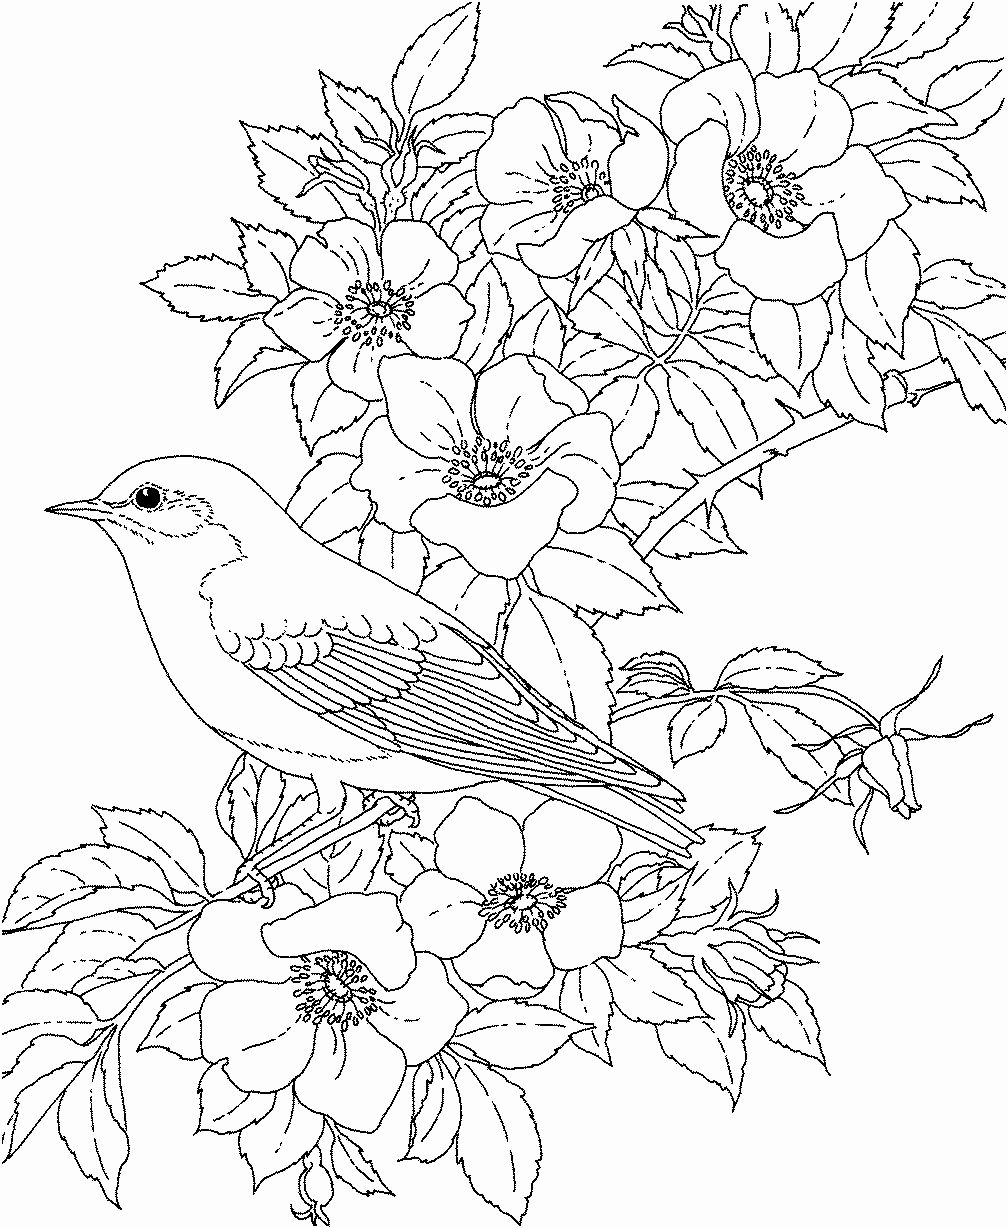 Cute Coloring Pages Of Animals Beautiful Coloring Pages Birds And Flowers Bird Coloring Pages Animal Coloring Pages Flower Coloring Pages